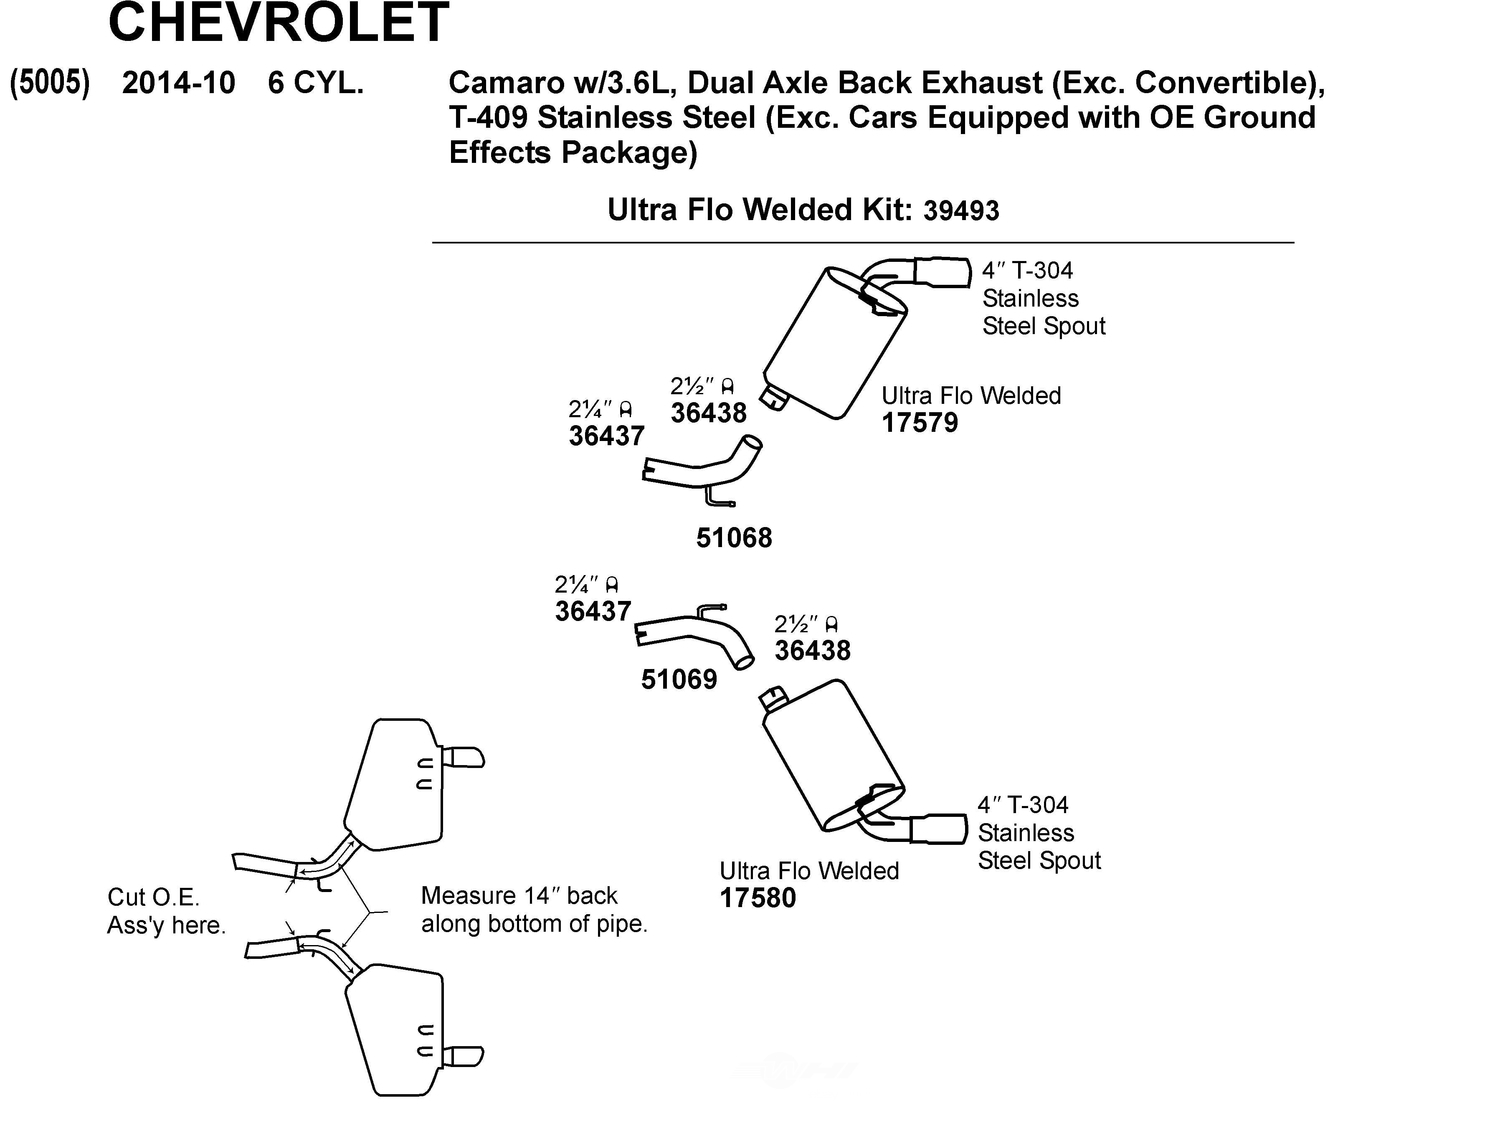 Buy Exhaust And Clutch Parts for CHEVROLET vehicle ...